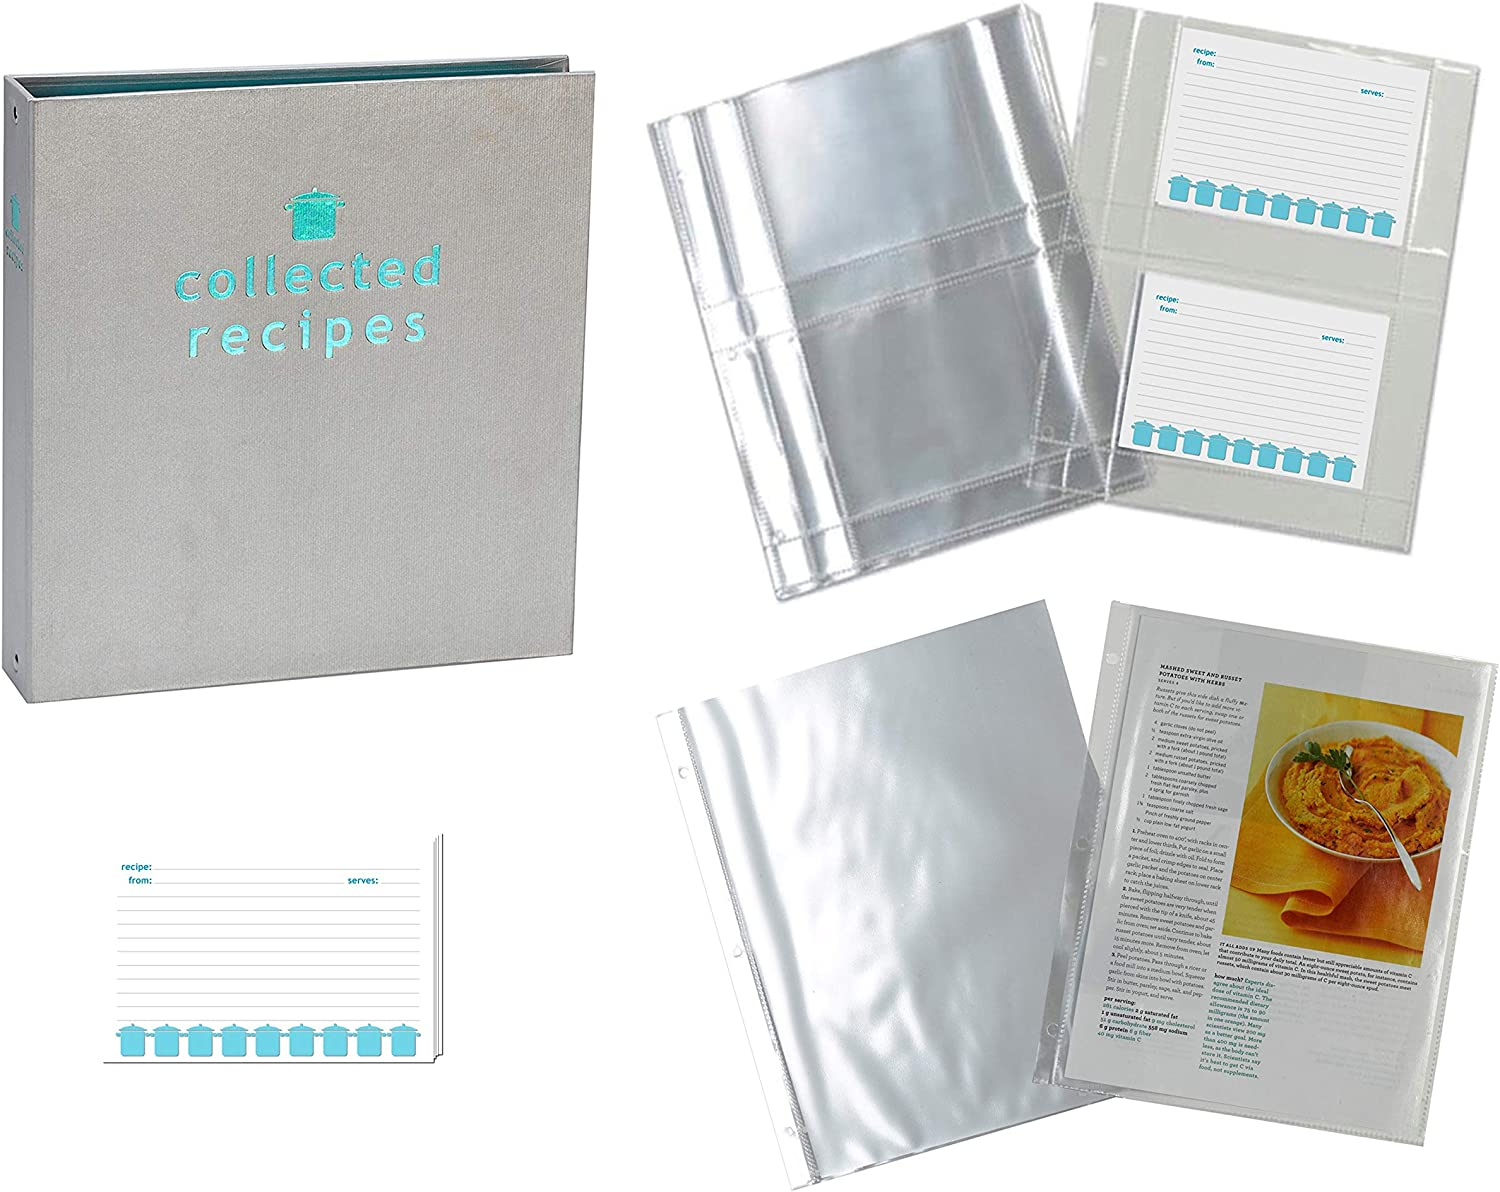 Meadowsweet Kitchens Recipe Binder Organizer Gift Set, Mother's Day, Wedding Gift, Housewarming, Family Recipe Book with Recipe Cards and Plastic Protector Sheets (Turquoise & Gray)